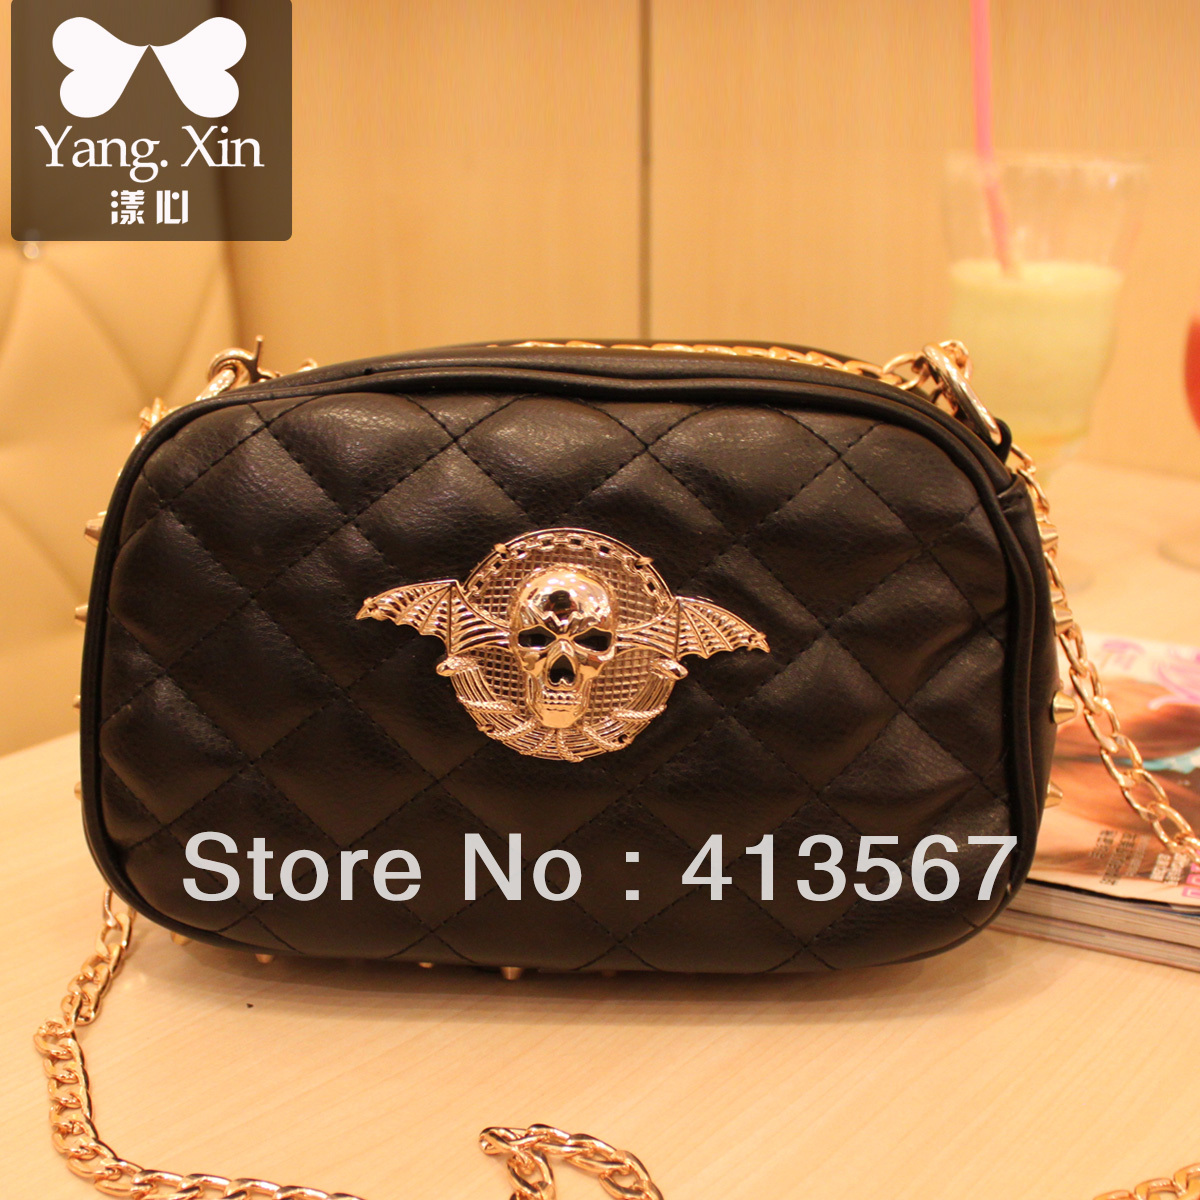 Mini cross-body bag women's corss shoulder bag chain with skull and rivet bag small handbags free ship(China (Mainland))